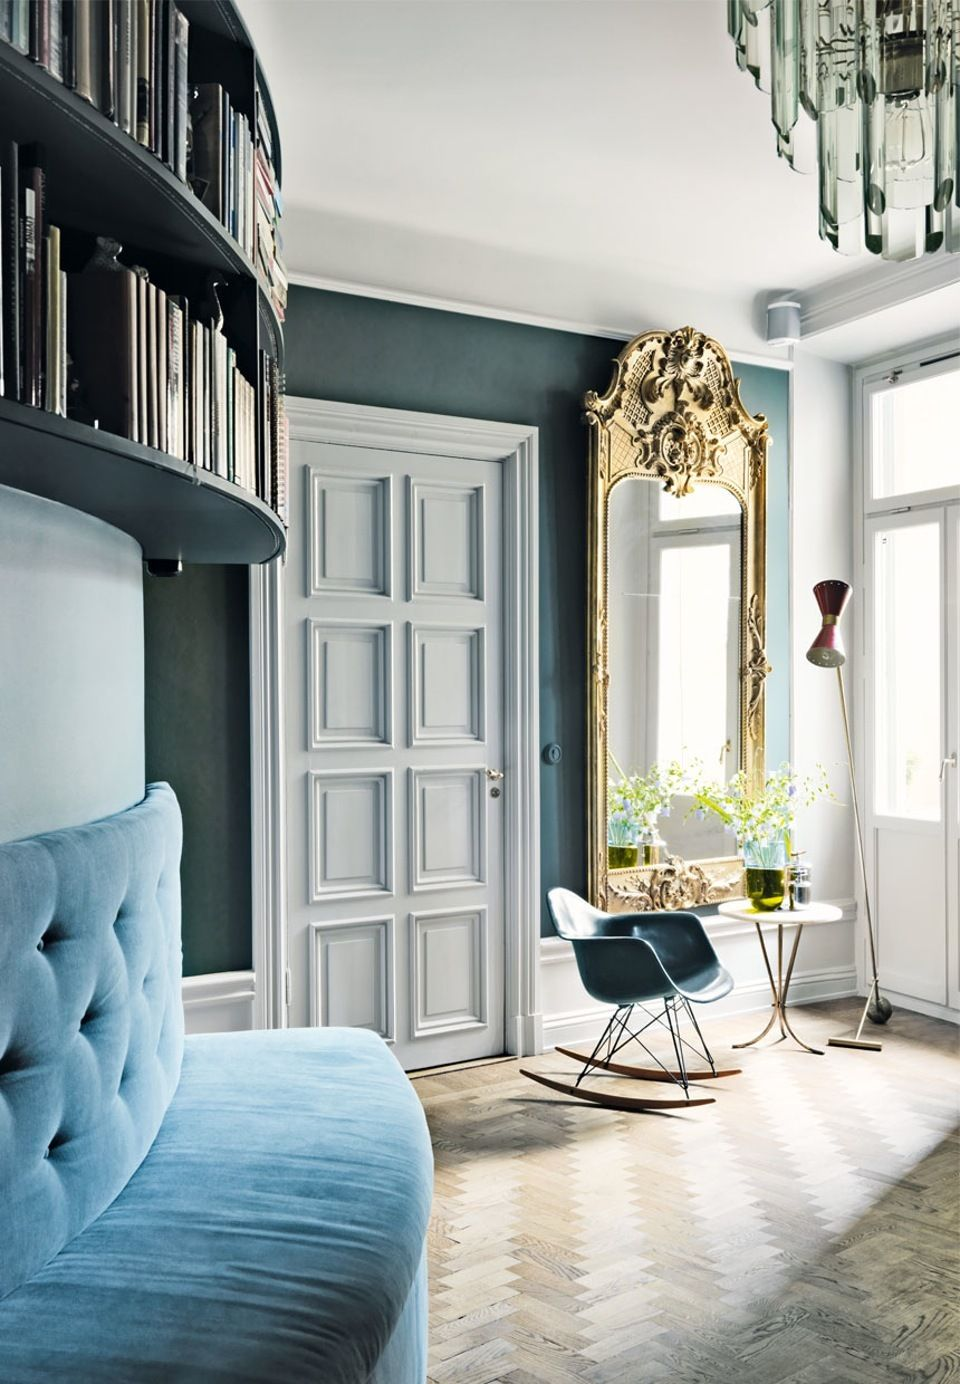 Amazing Living Space With An Elegant And Large Mirror A Golden Frame